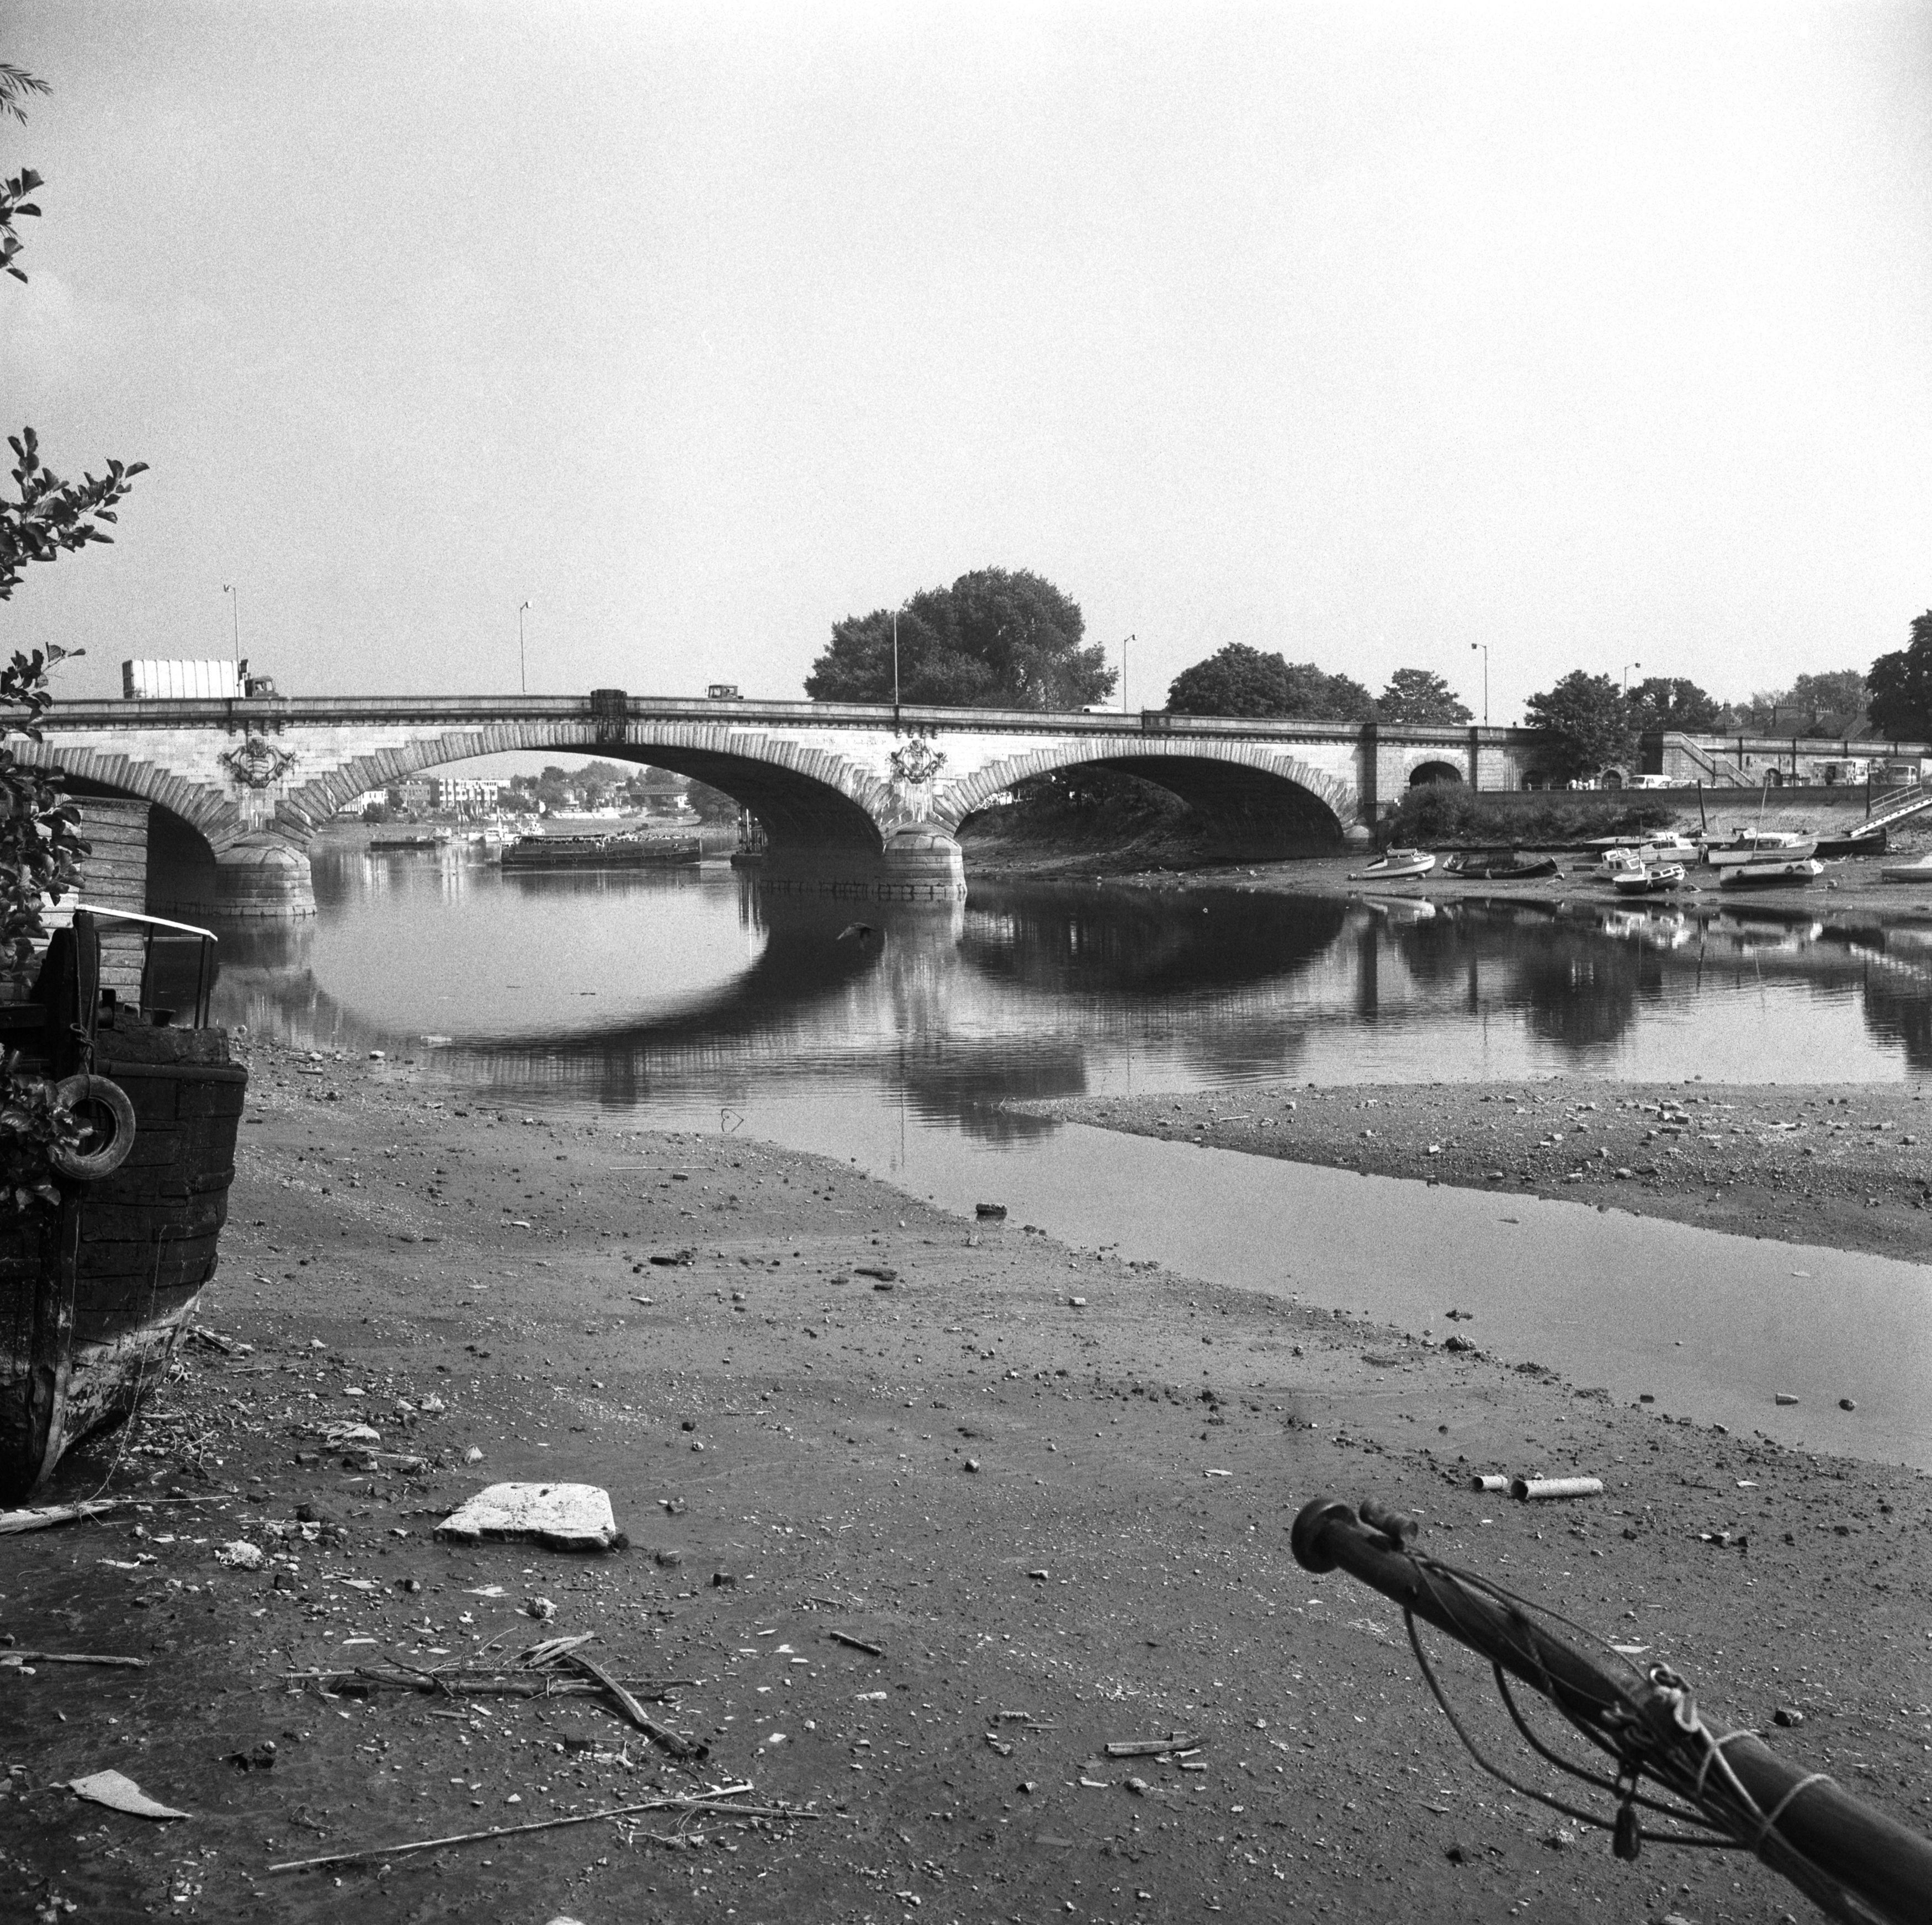 The River Thames during the drought of 1976